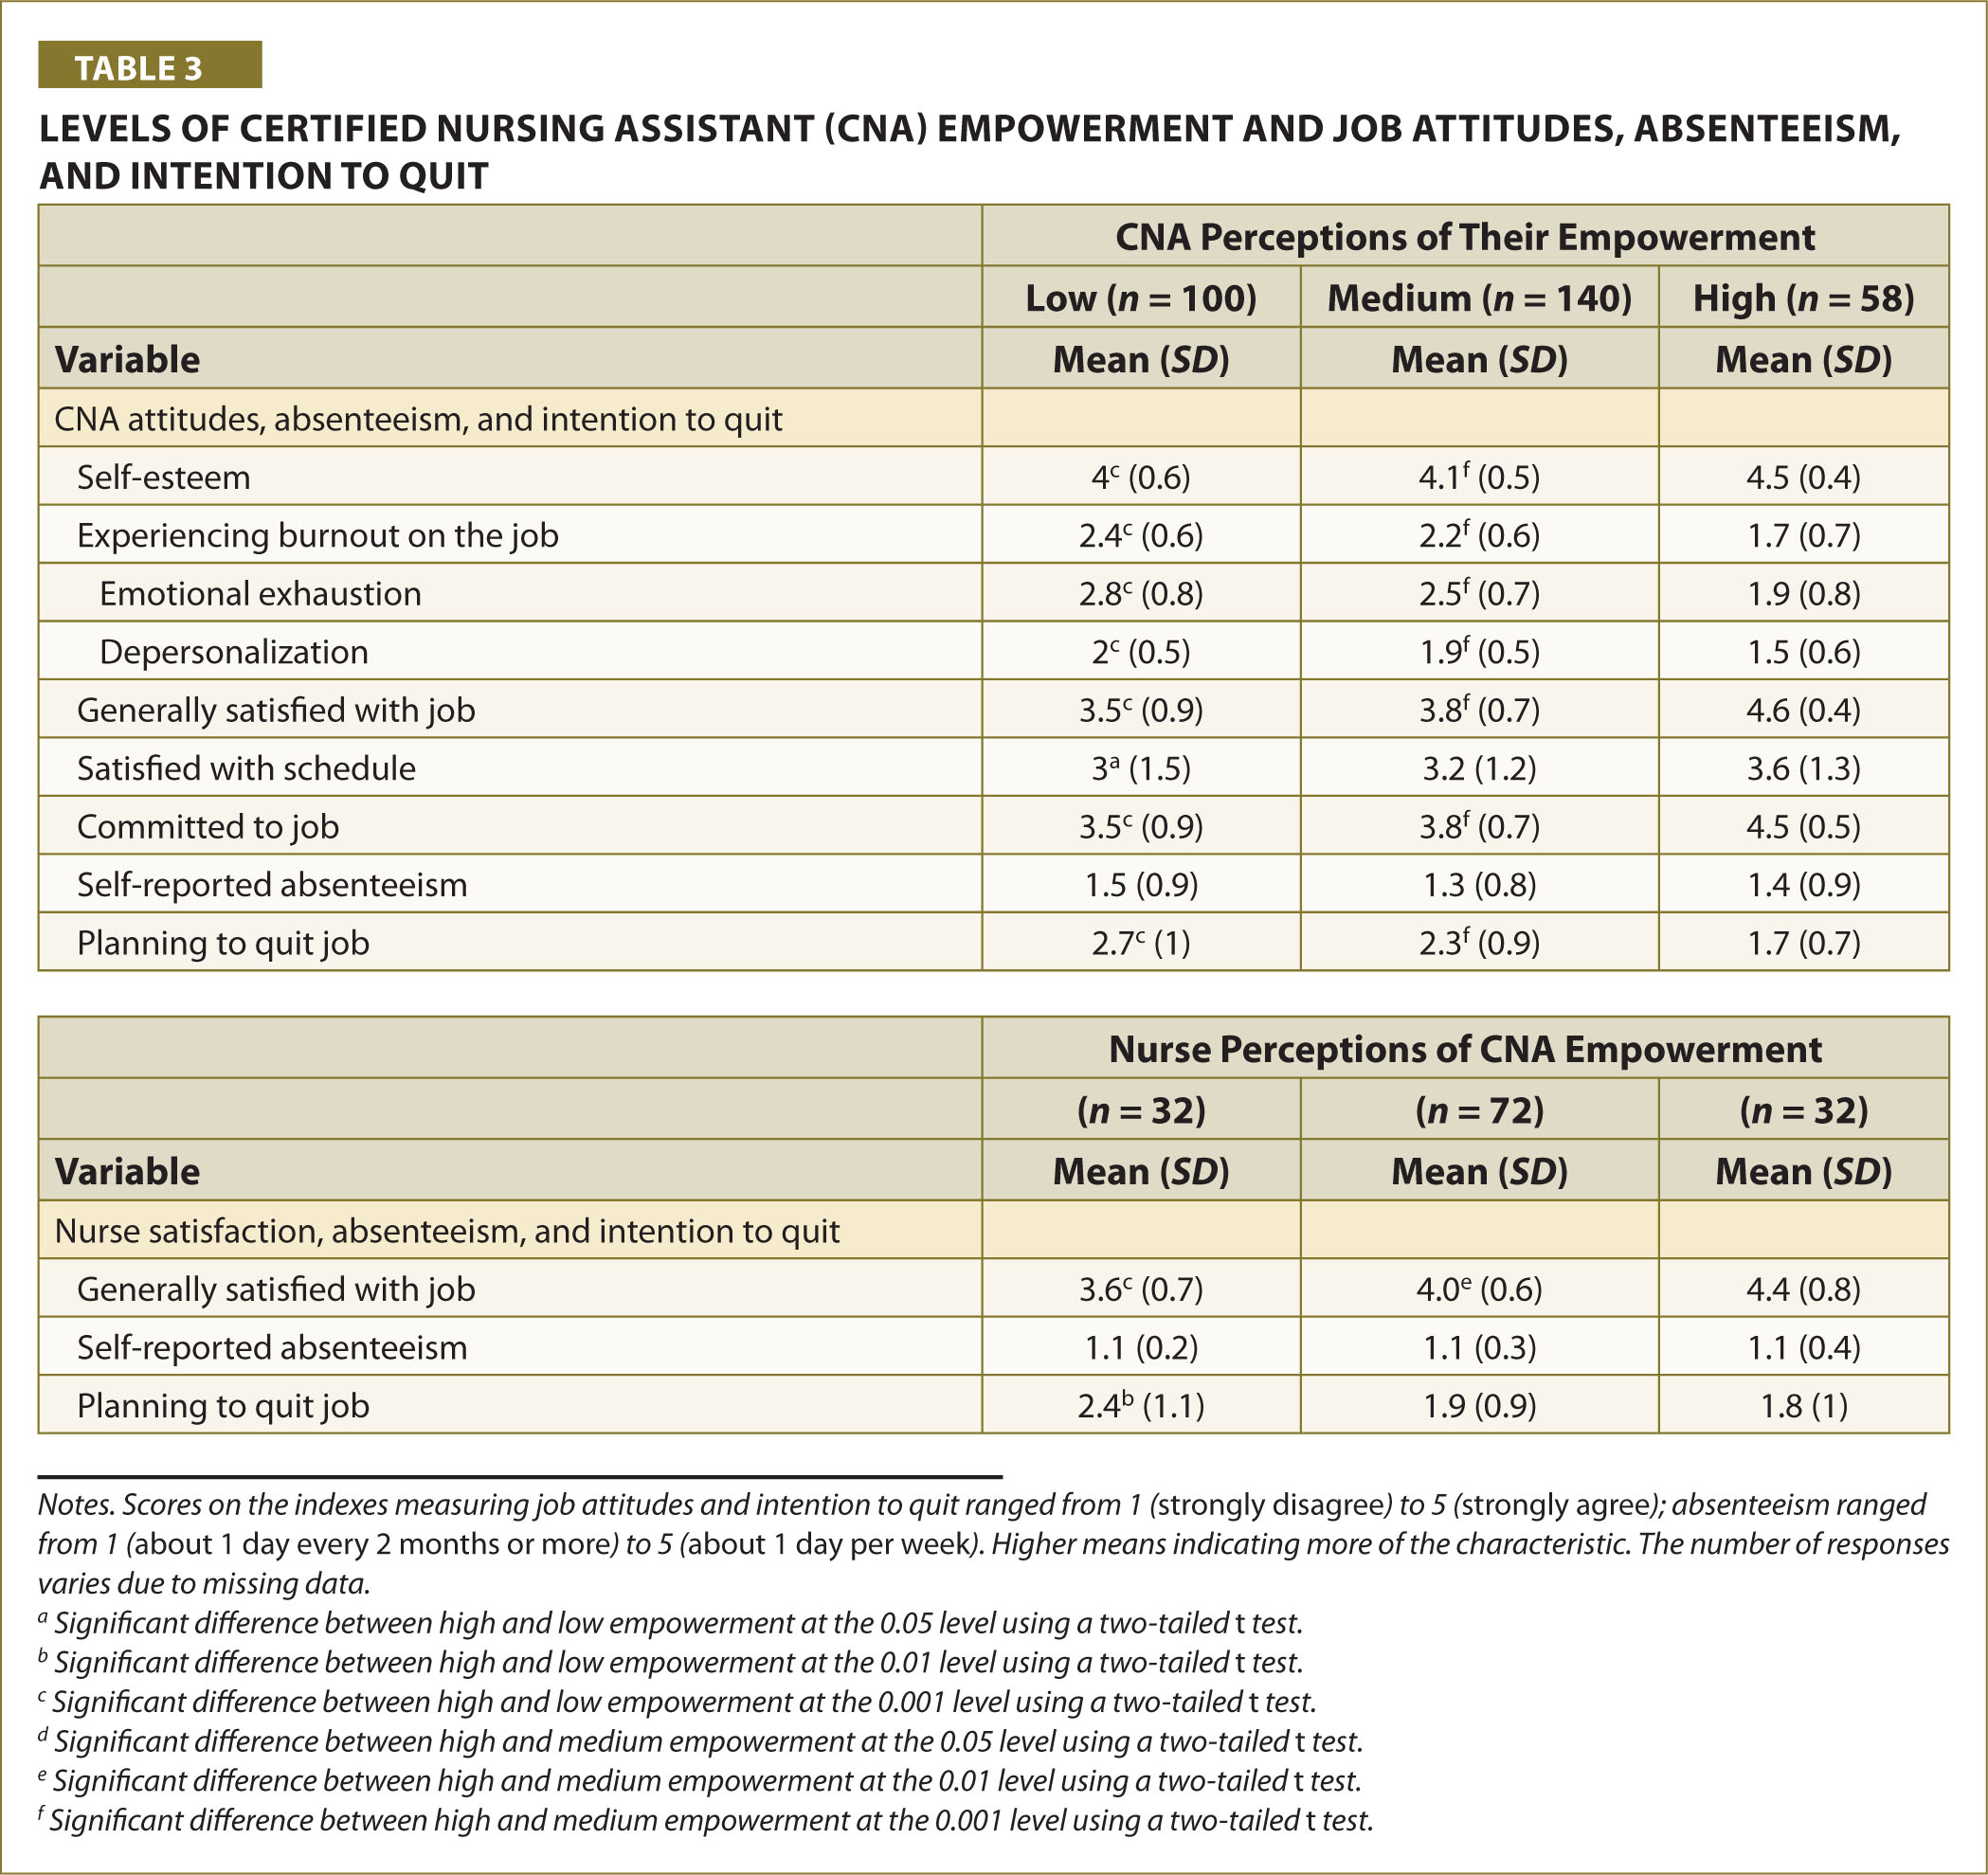 Levels of Certified Nursing Assistant (CNA) Empowerment and Job Attitudes, Absenteeism, and Intention to Quit